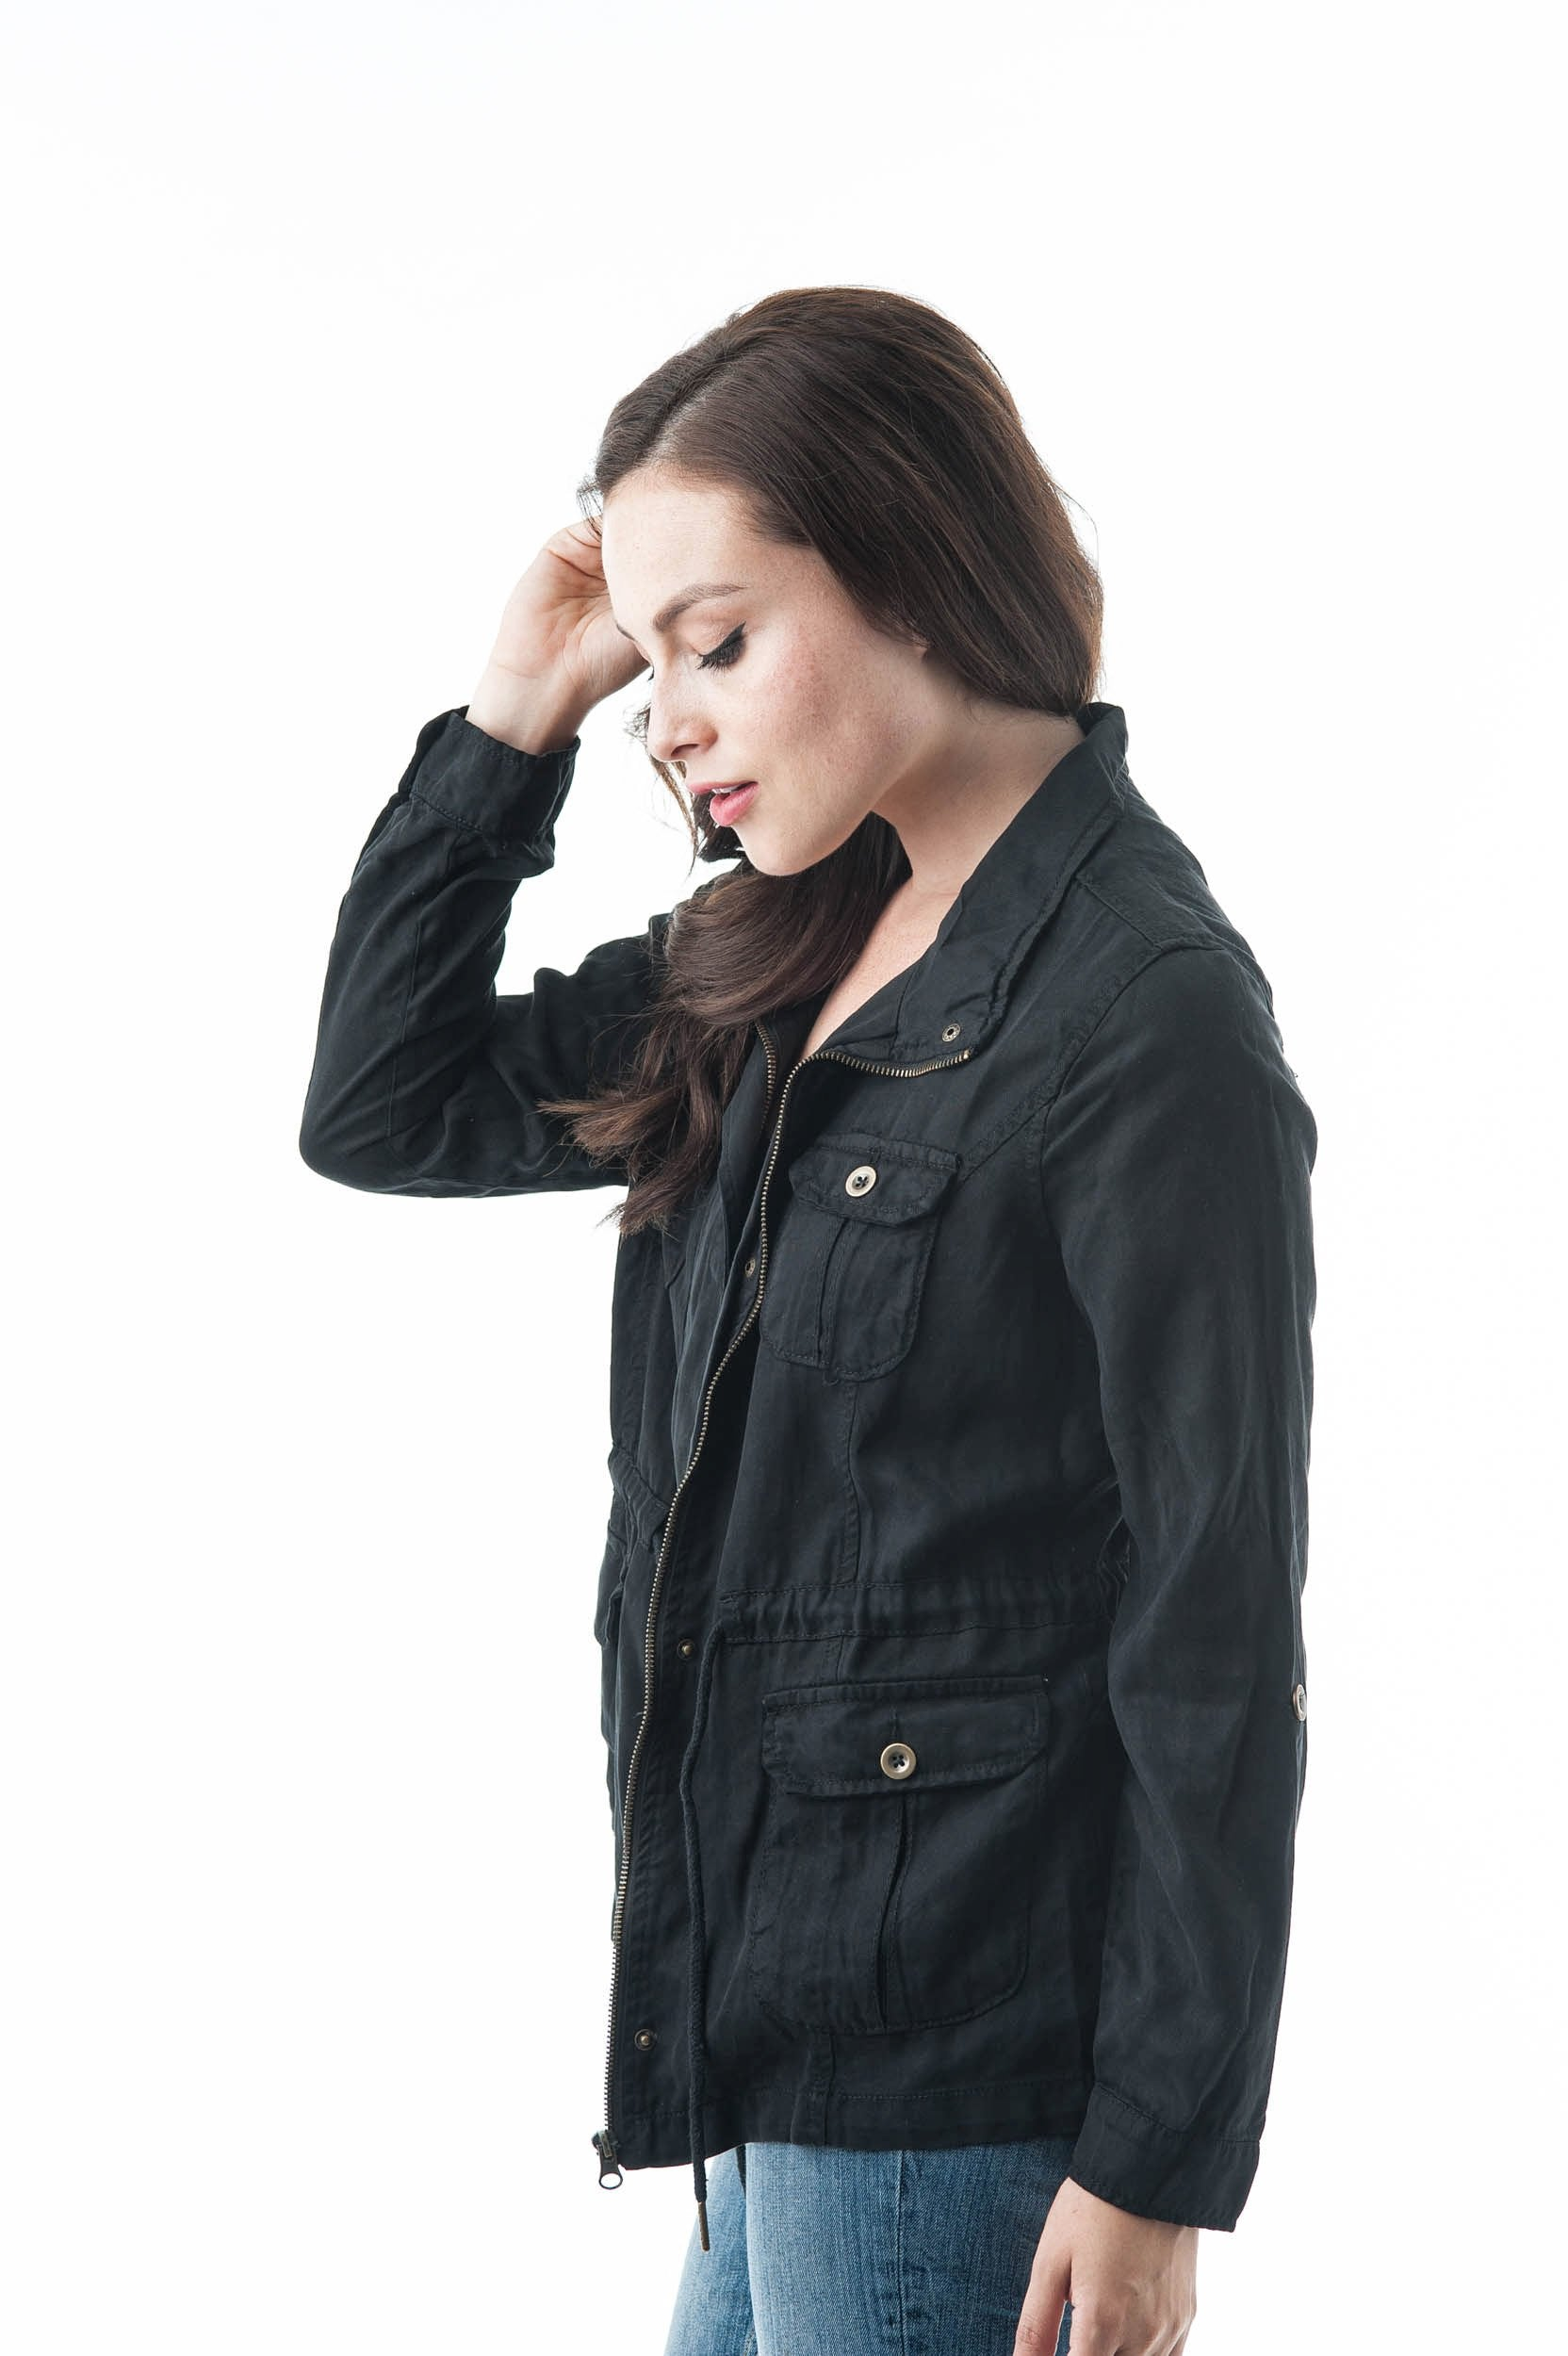 lightweight Tencel Utility Jacket With 4 Front Pockets And Self-Tie Drawstring Waist